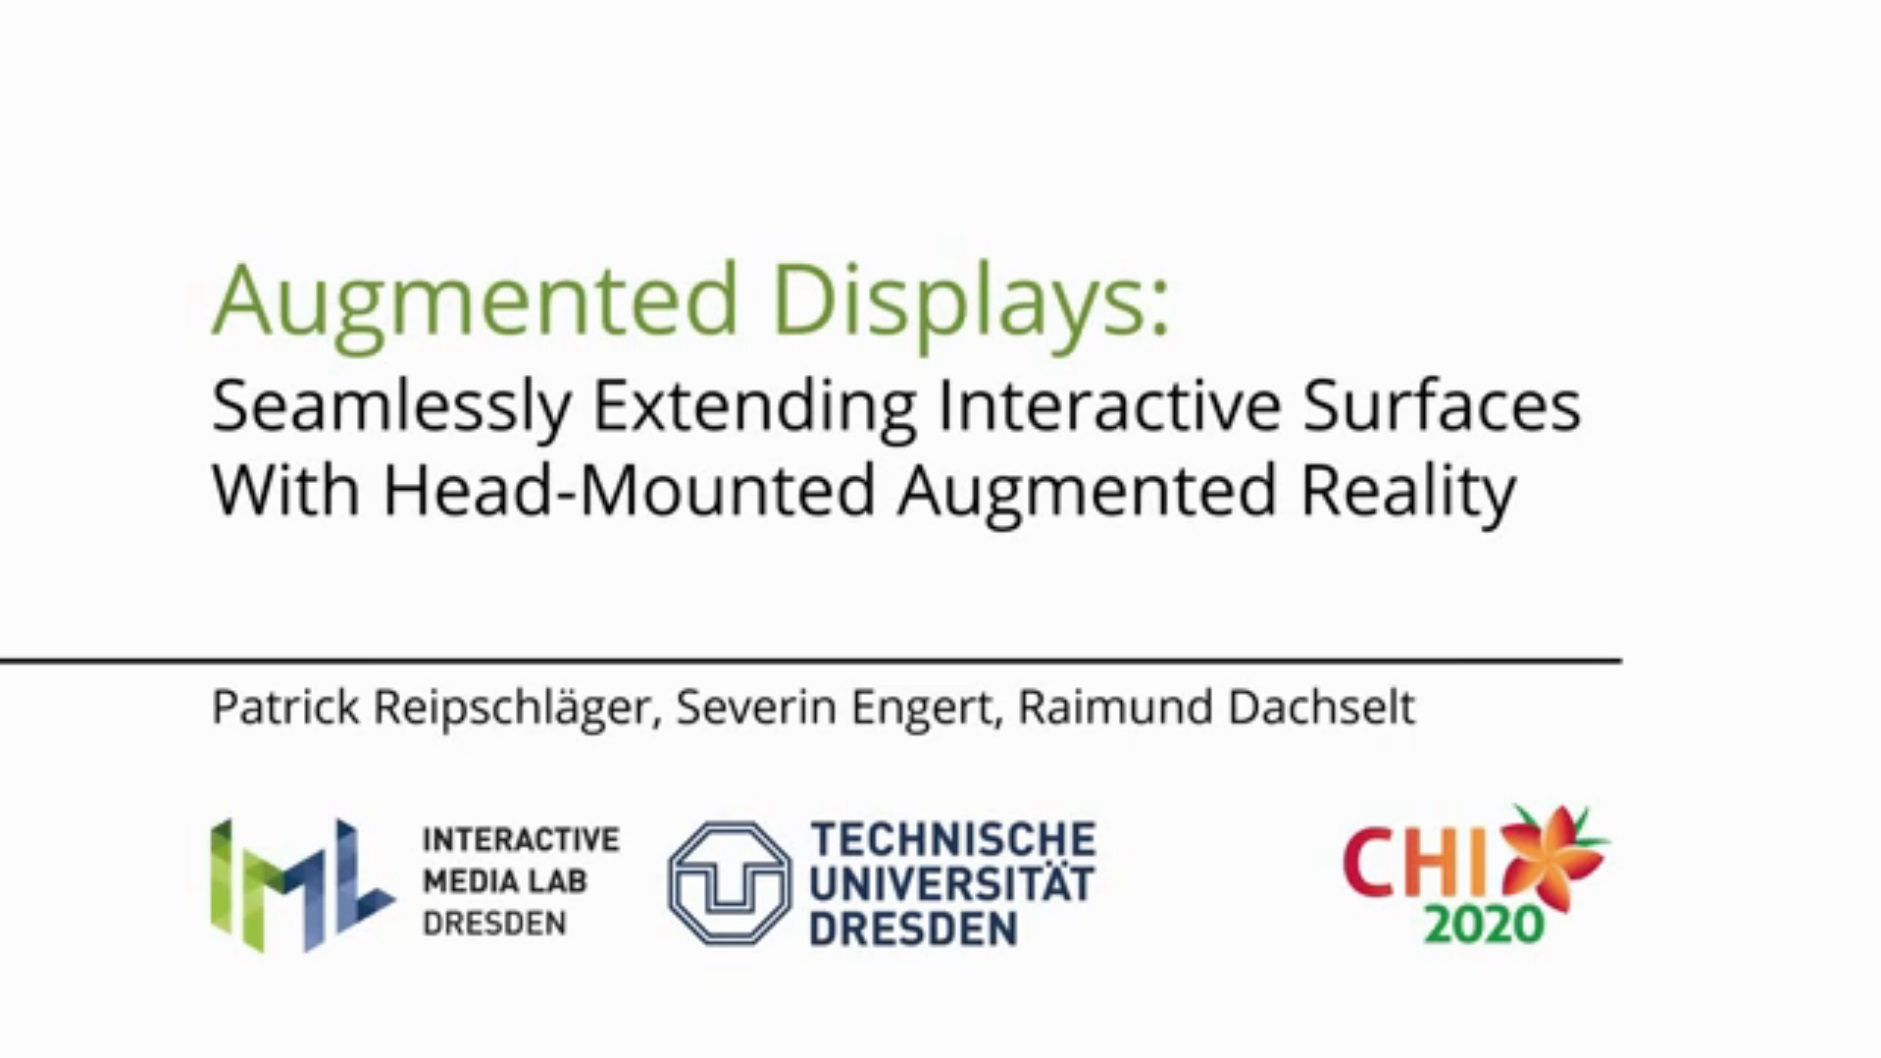 Full video of Augmented Displays.